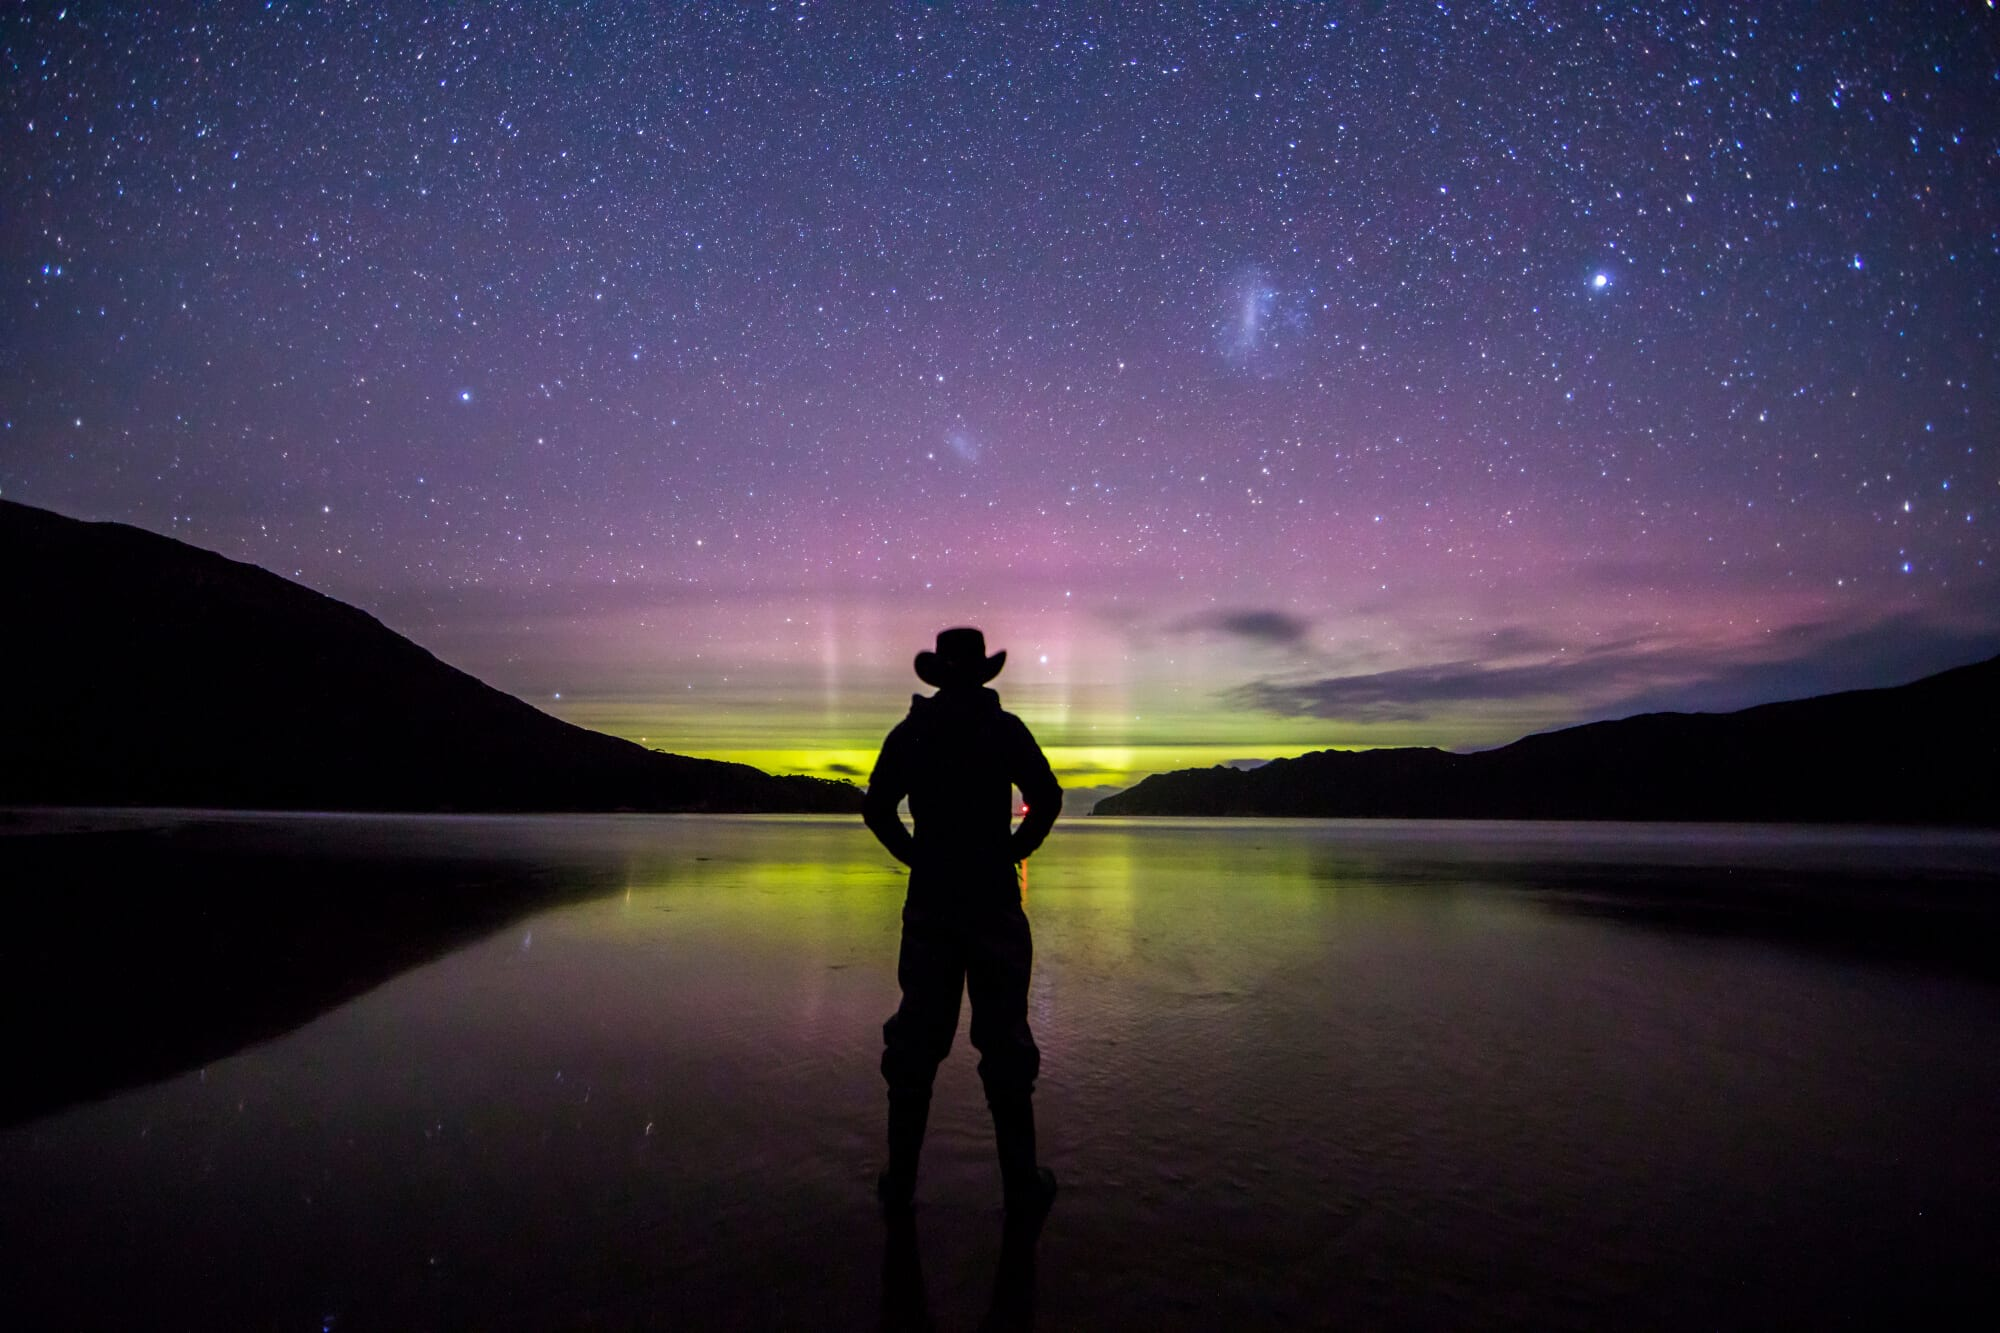 Southern Lights (Aurora Australis) as photographed from Southwest National Park, Tasmania